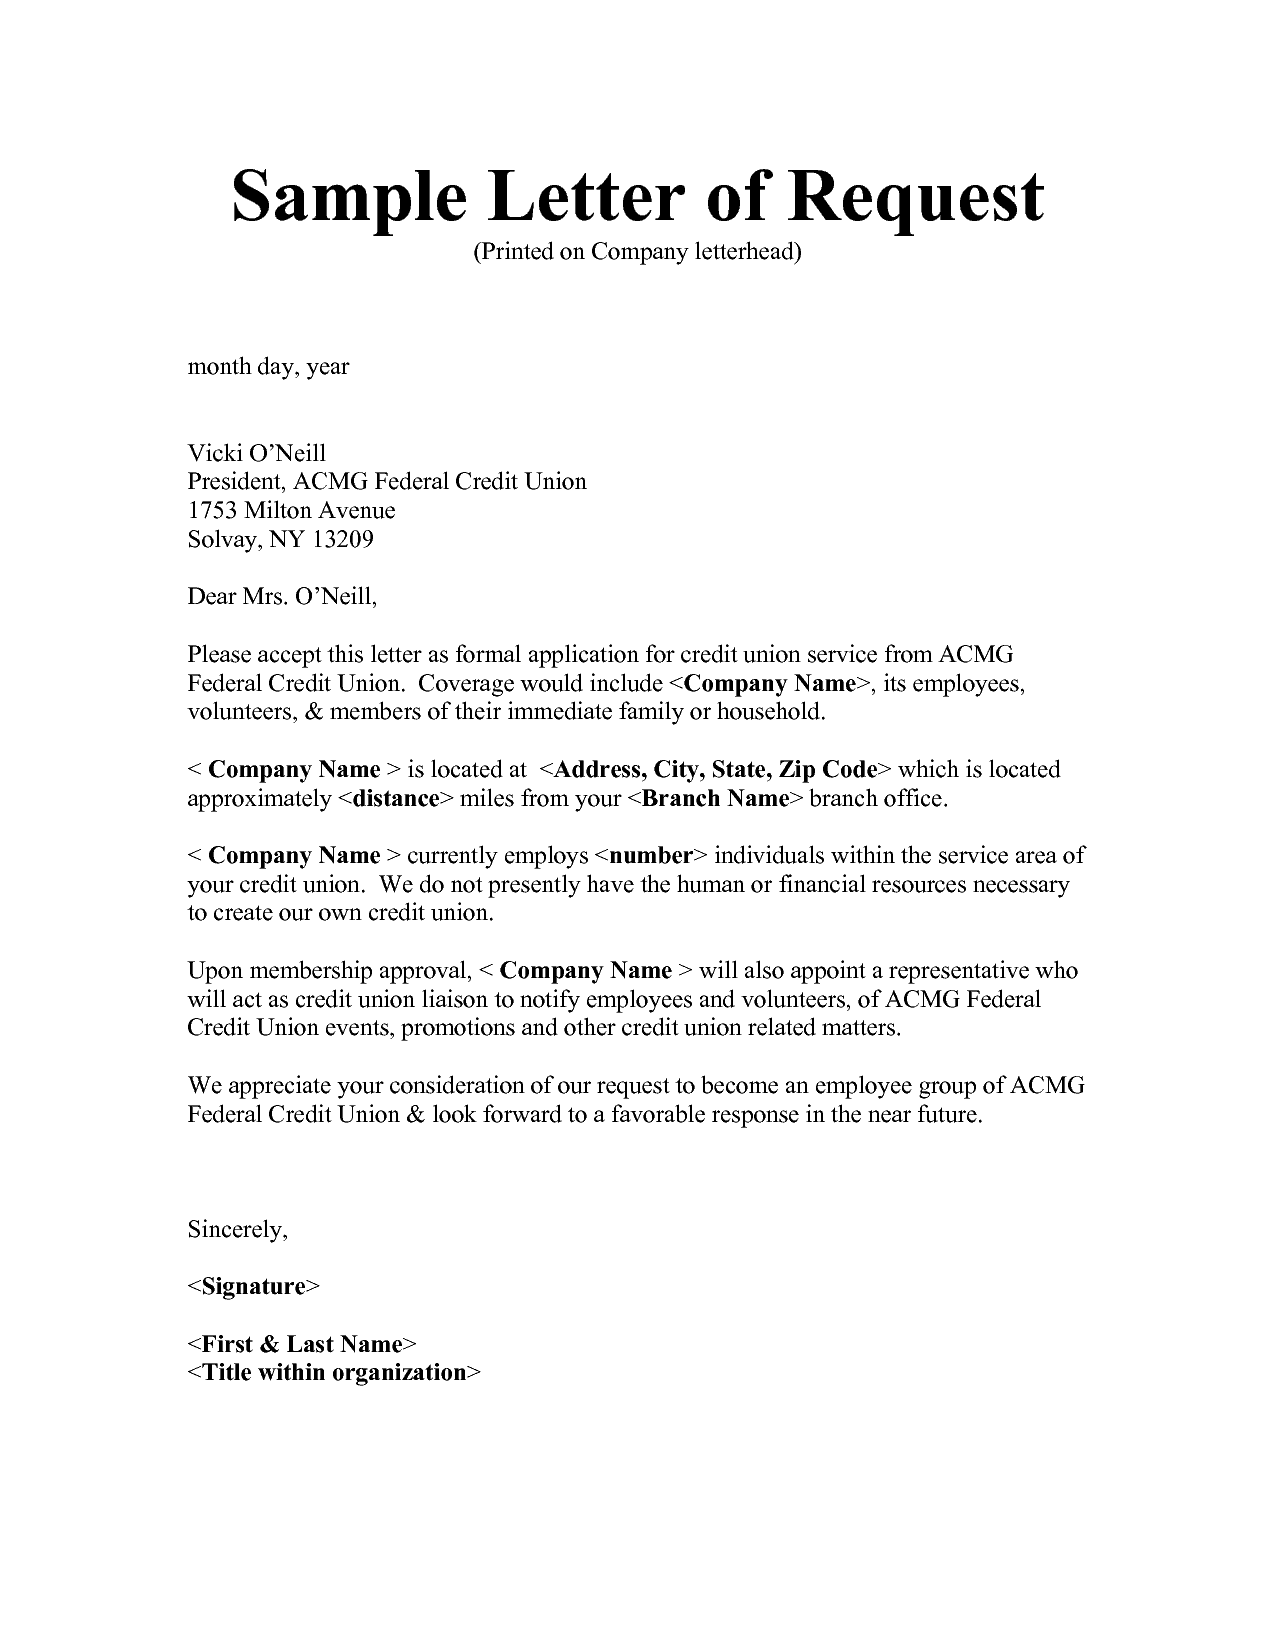 Cover letter for project proposal example of a project manager sample request letters writing professional letter requesting job recommendation from professor best free home design idea inspiration thecheapjerseys